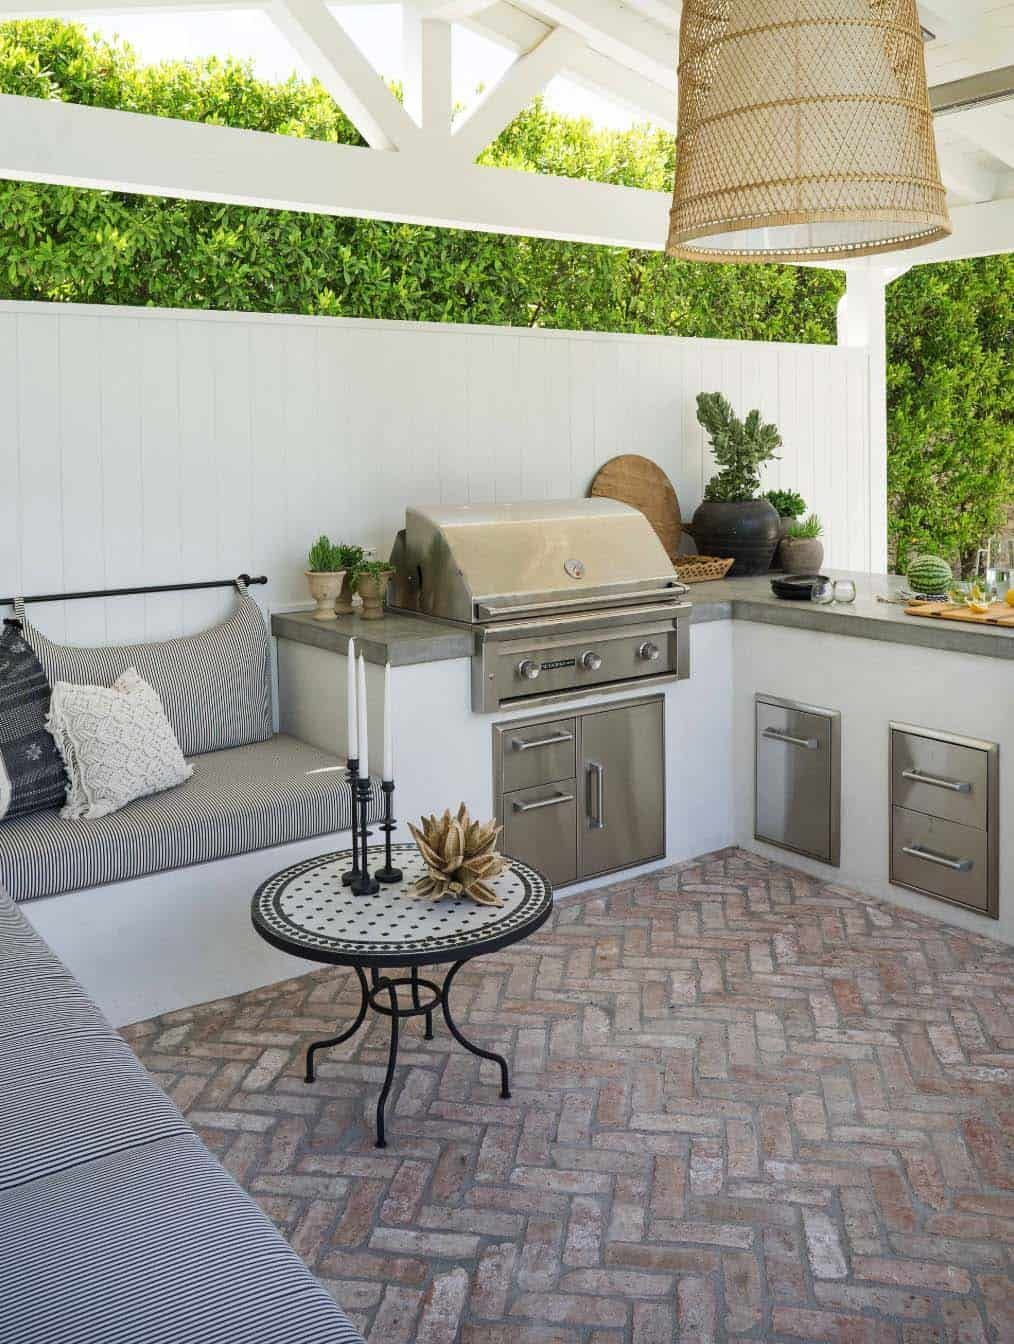 38 Absolutely Fantastic Outdoor Kitchen Ideas For Dining Al Fresco Outdoorkitchen In 2020 Outdoor Kitchen Outdoor Kitchen Patio Outdoor Kitchen Design